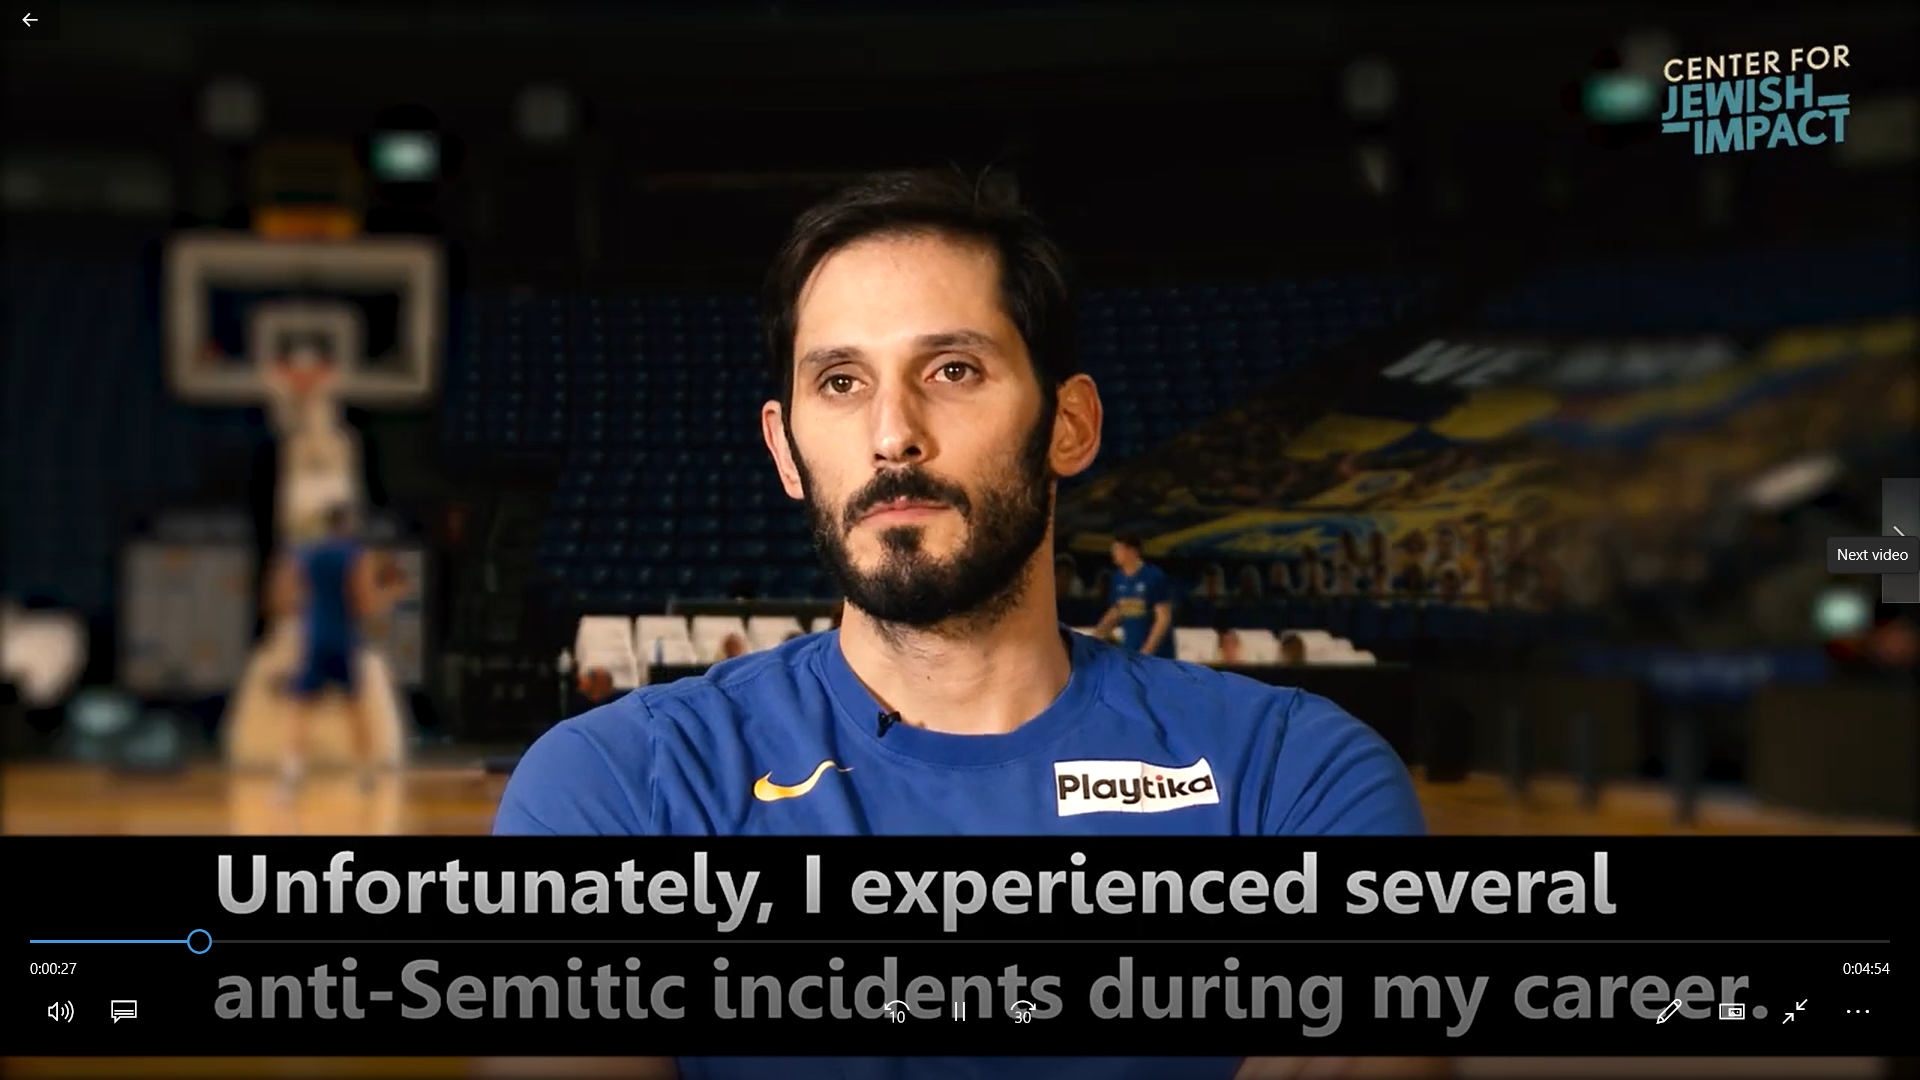 Center for Jewish Impact - Athletes Speak About Anti-Semitism for International Holocaust Remembranc